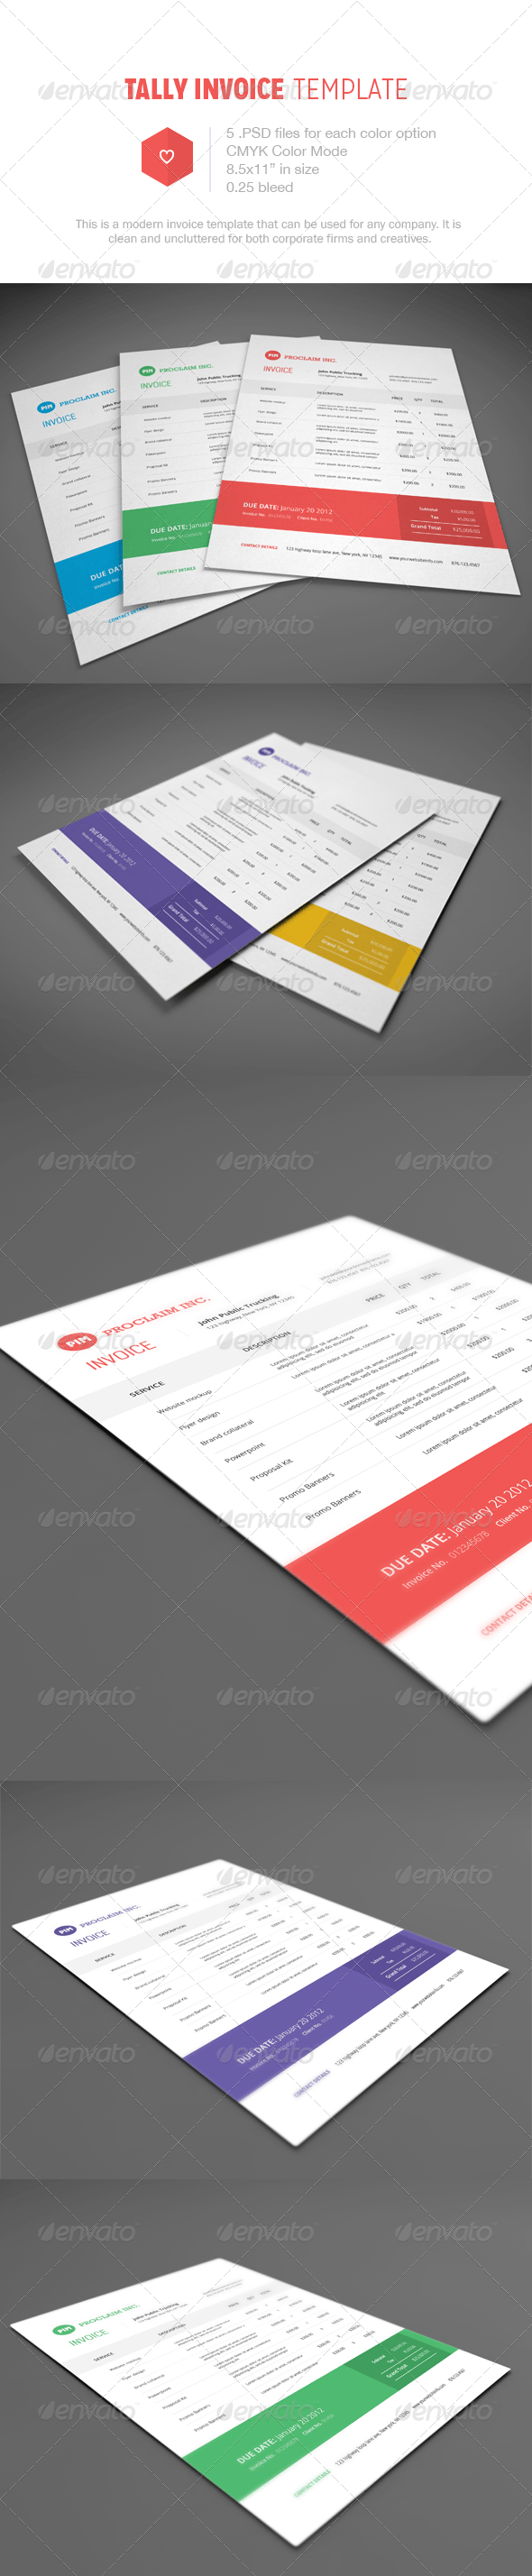 38  Invoice Templates PSD DOCX INDD   Free Download   PSDTemplatesBlog Tally Invoice Template